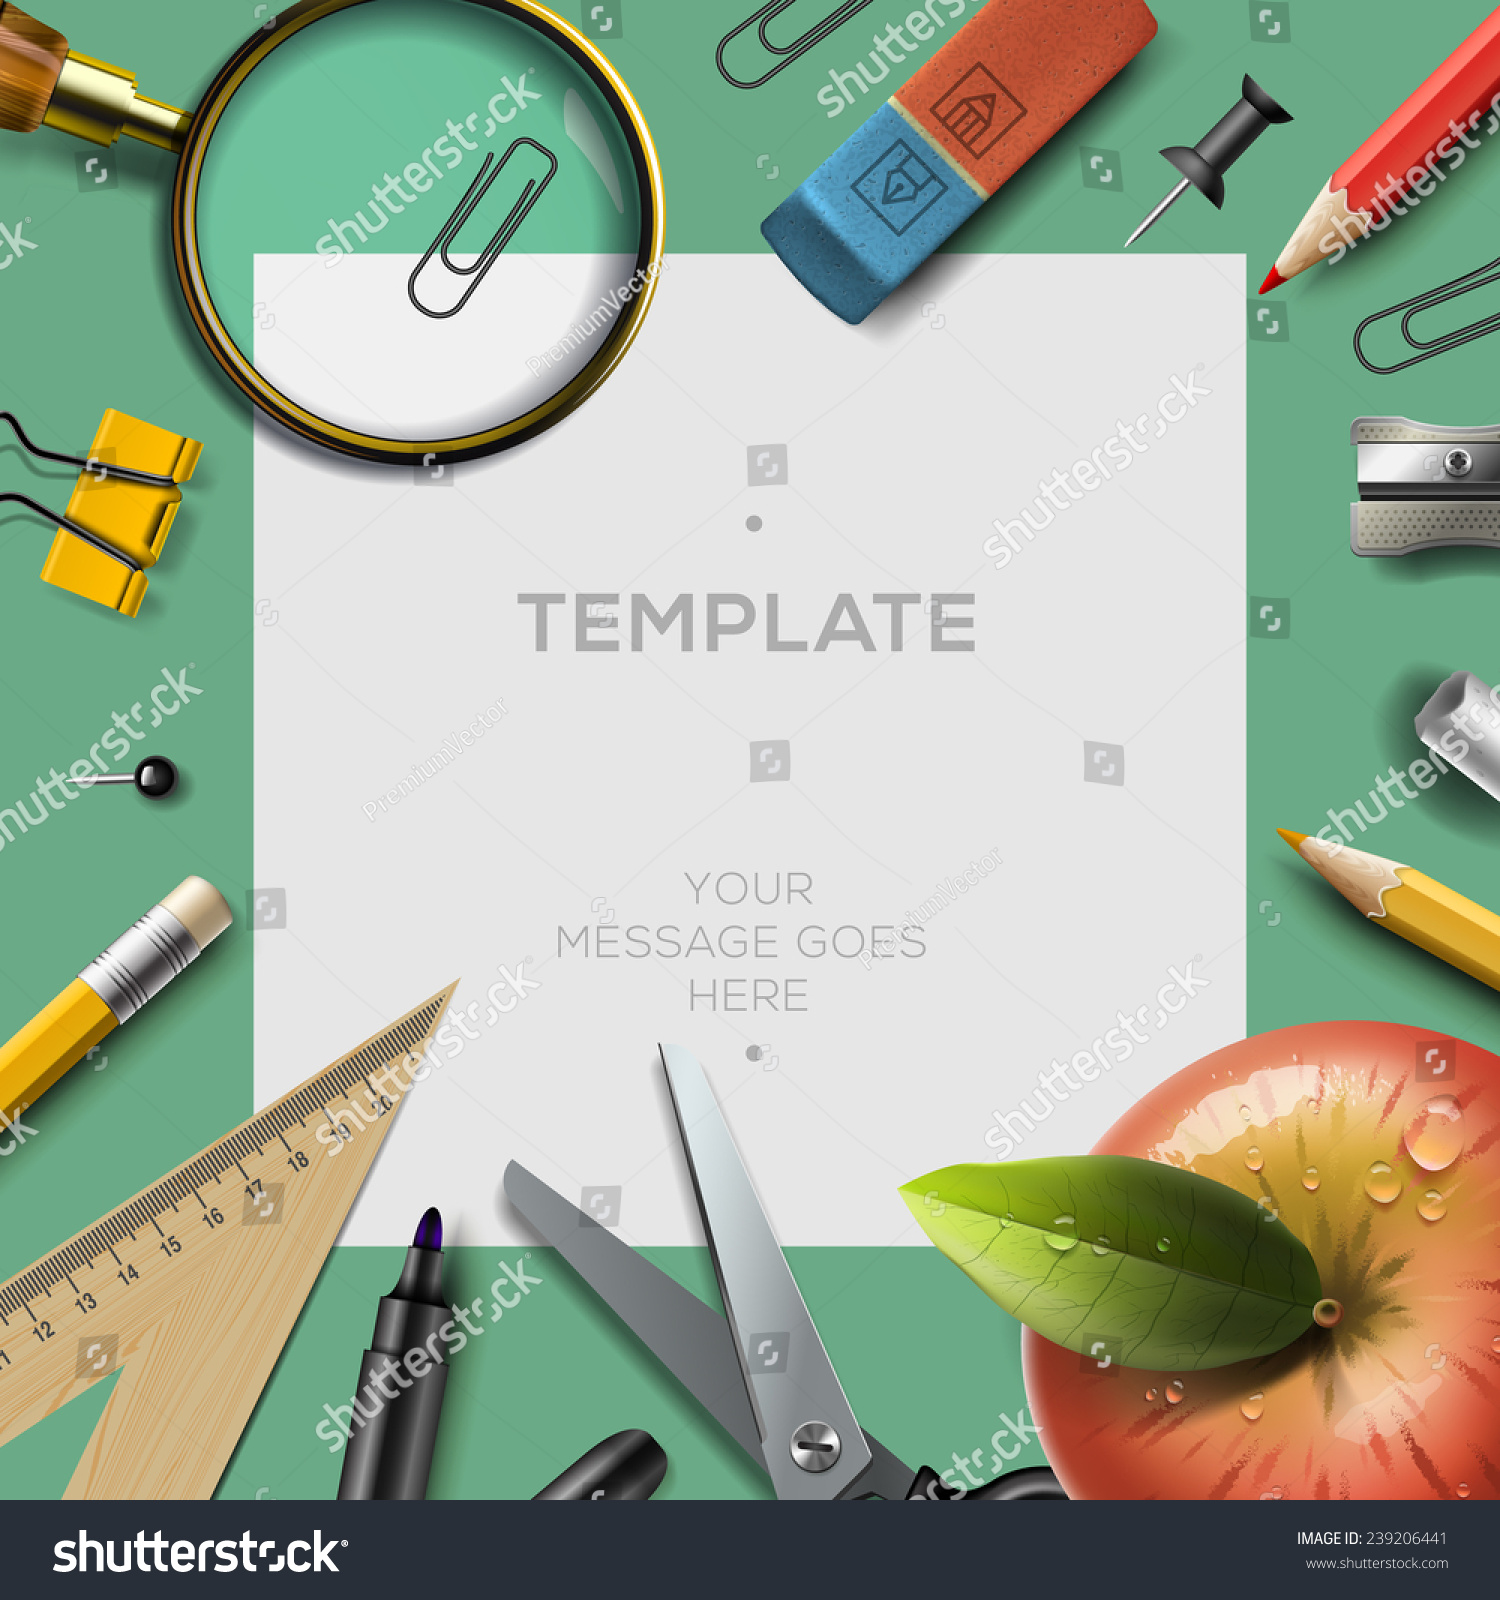 education template office supplies back school stock vector education template office supplies back to school background vector illustration